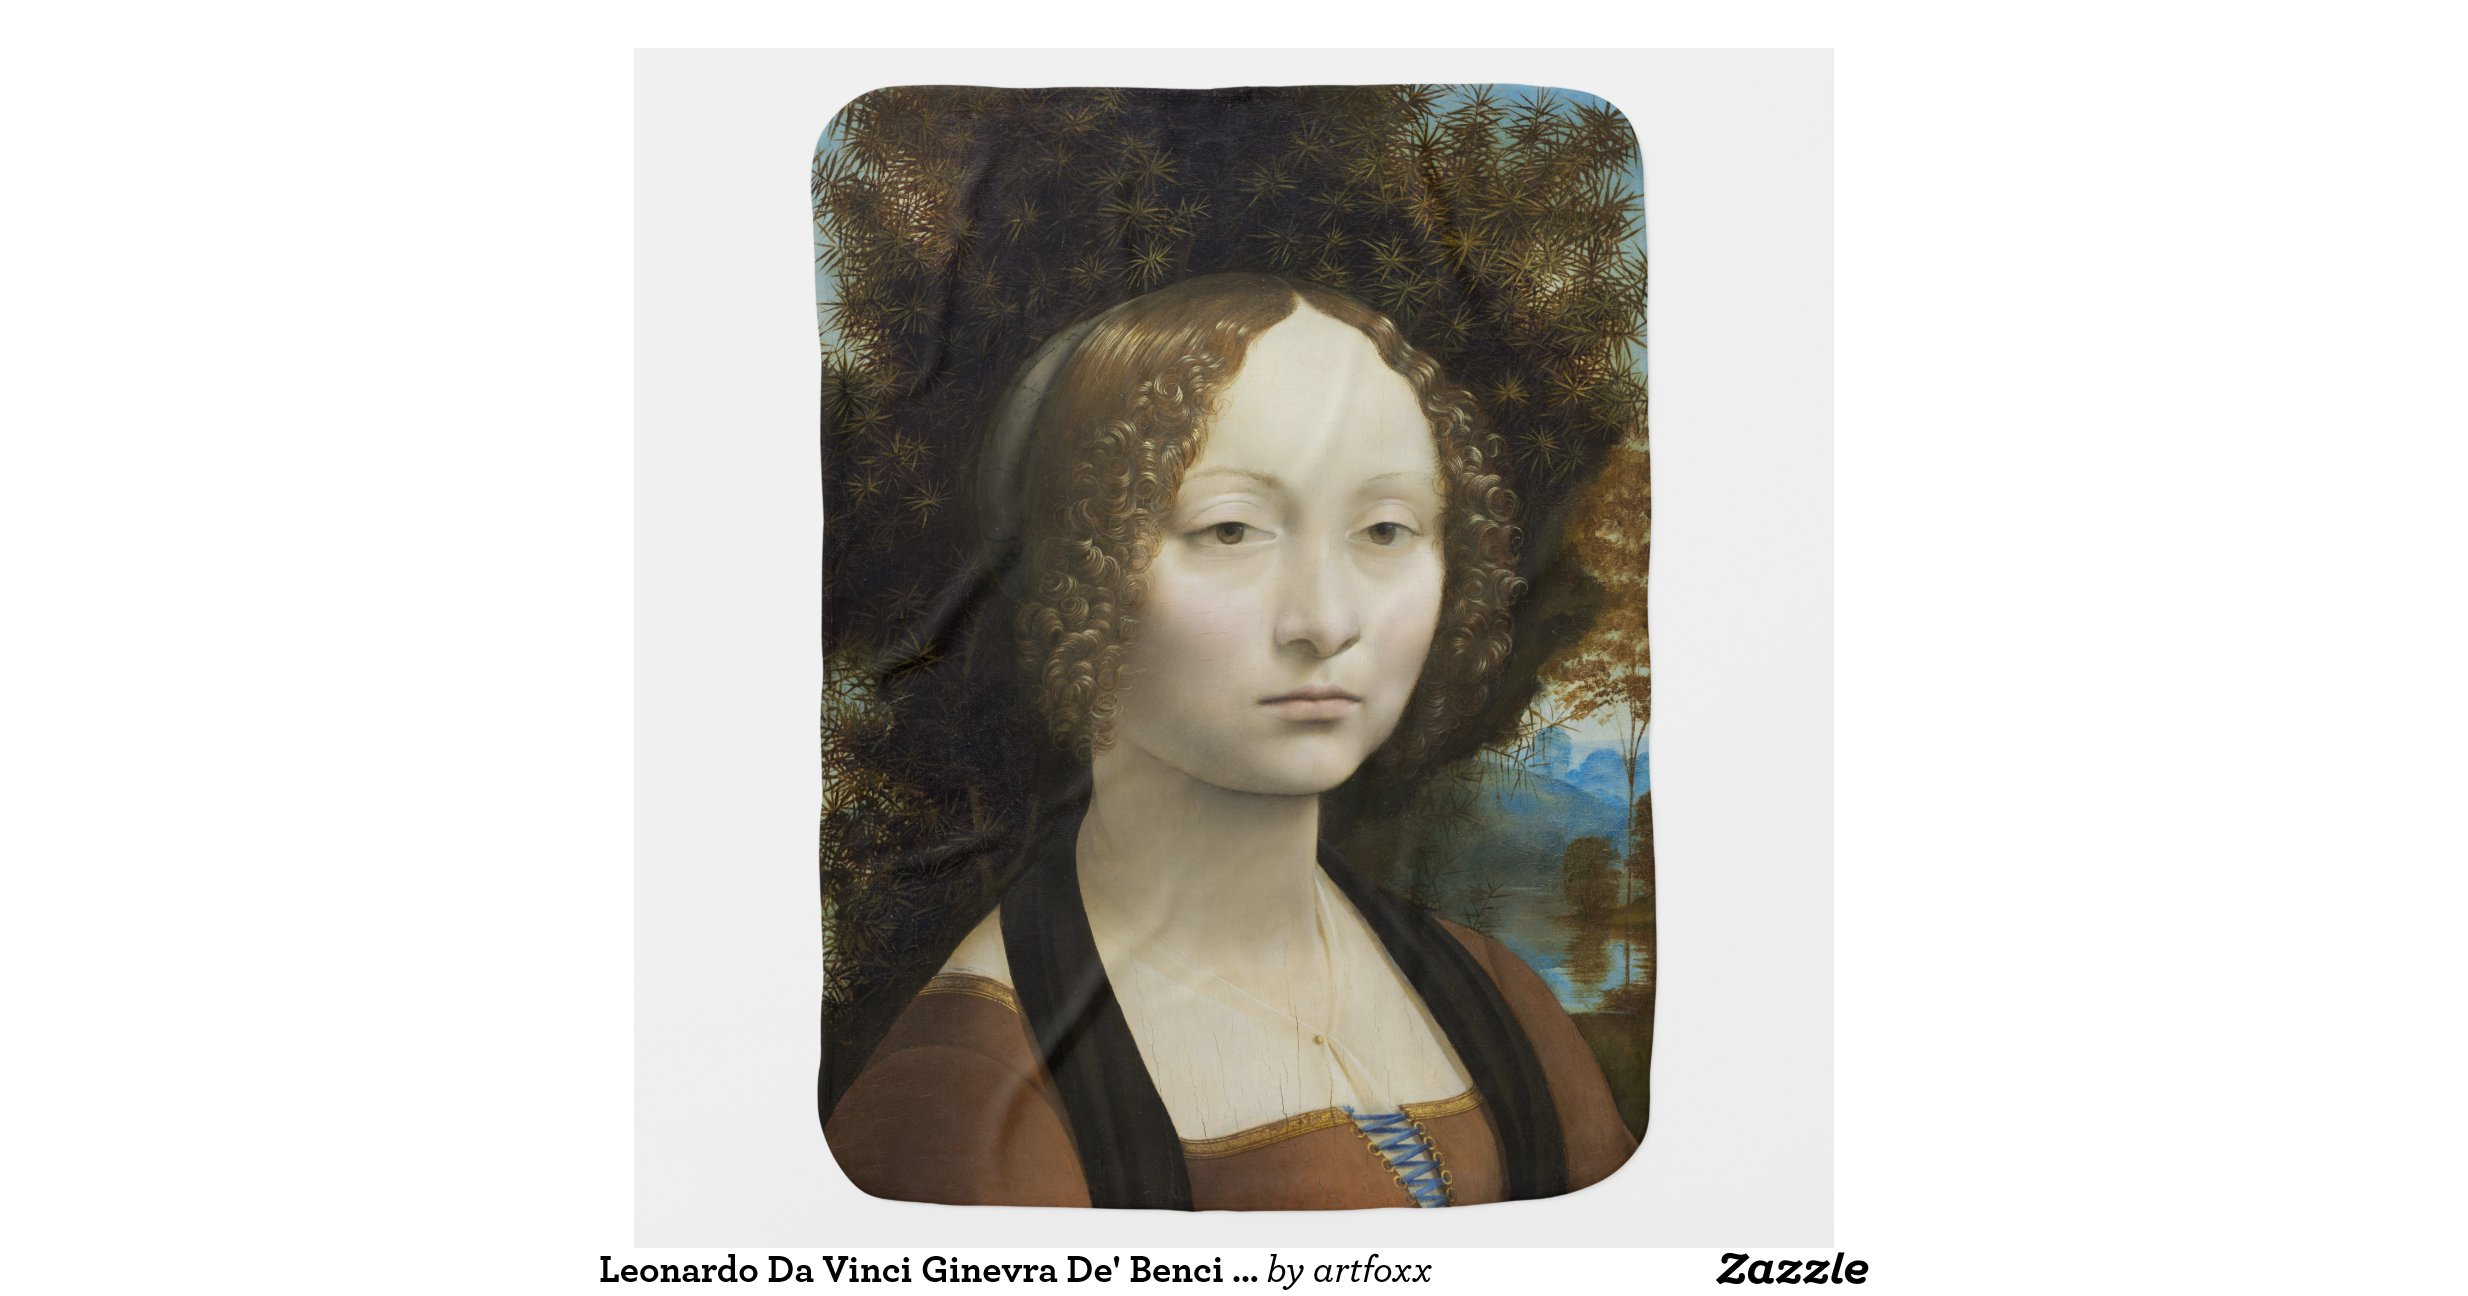 leonardo da vincis ginevra de benci essay The lichtenstein lady the so called portrait of ginevra de' benci at the national gallery of art, washington dc – also known as the lichtenstein lady – is seen by most art critics as the first portrait created by the 22 years old leonardo da vinci (1452 – 1519).